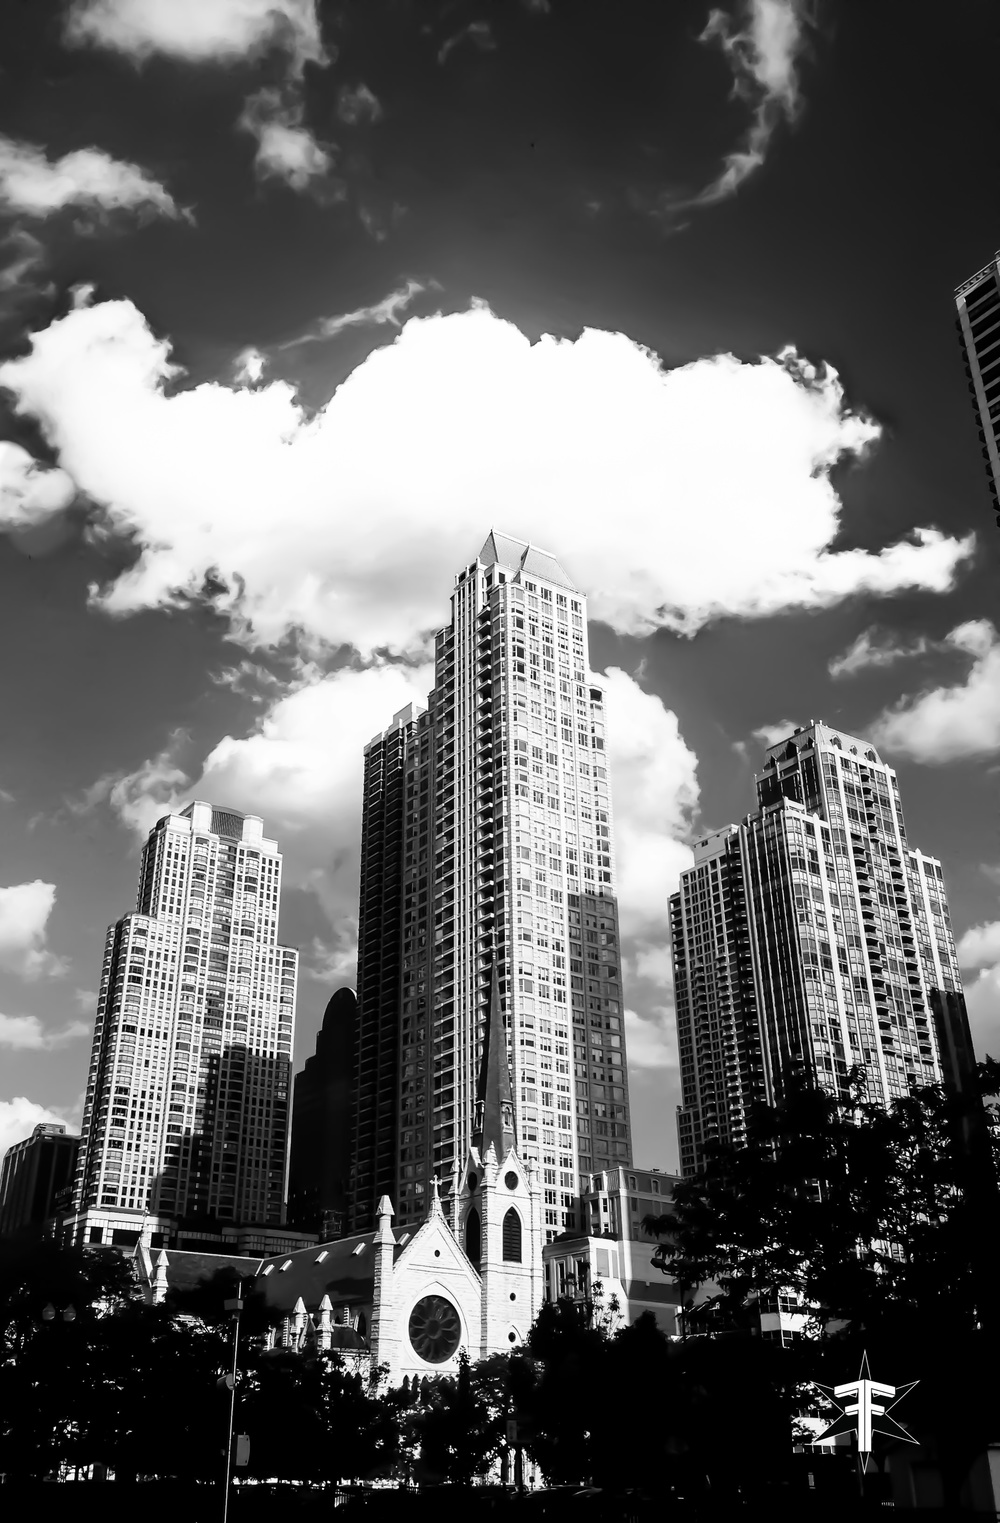 chicago architecture eric formato photography design arquitectura architettura buildings skyscraper skyscrapers-14.jpg